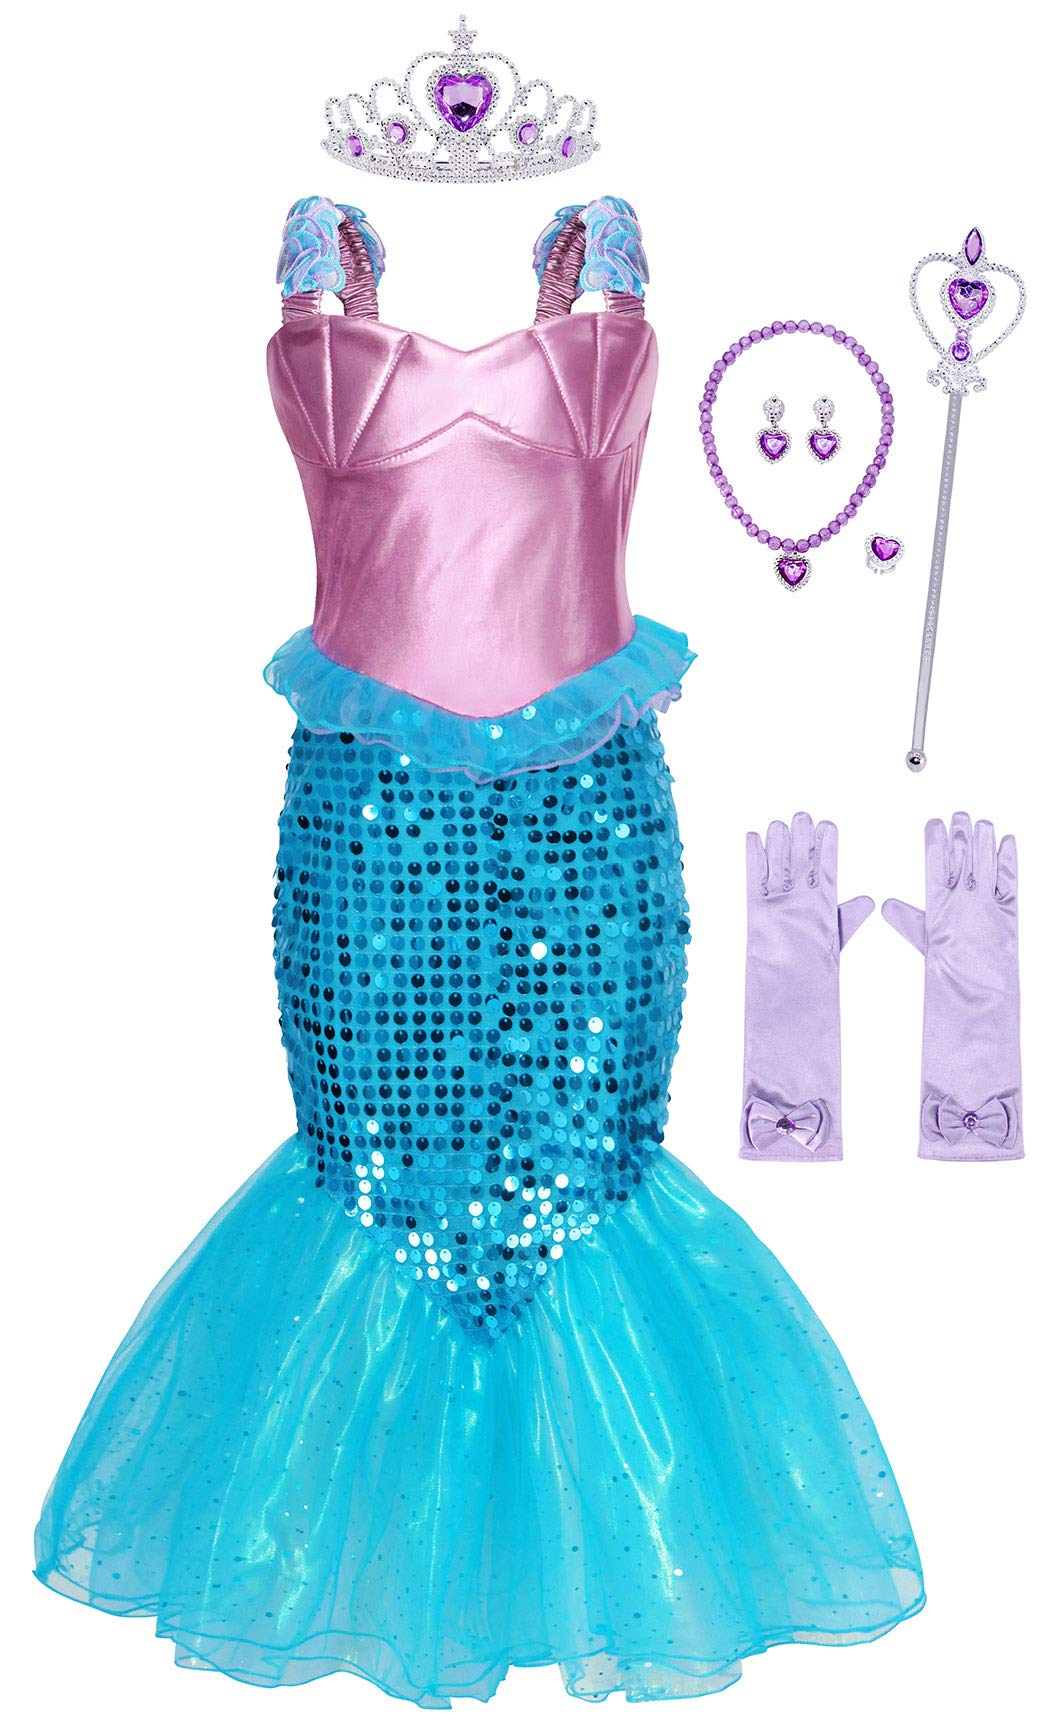 AmzBarley Mermaid Costume for Girls Fancy Dress Up Halloween Princess Ariel Clothes Sequins Birthday Theme Party Outfits Holiday School Performance Cosplay with Accessories Size 6 (5-6Years)